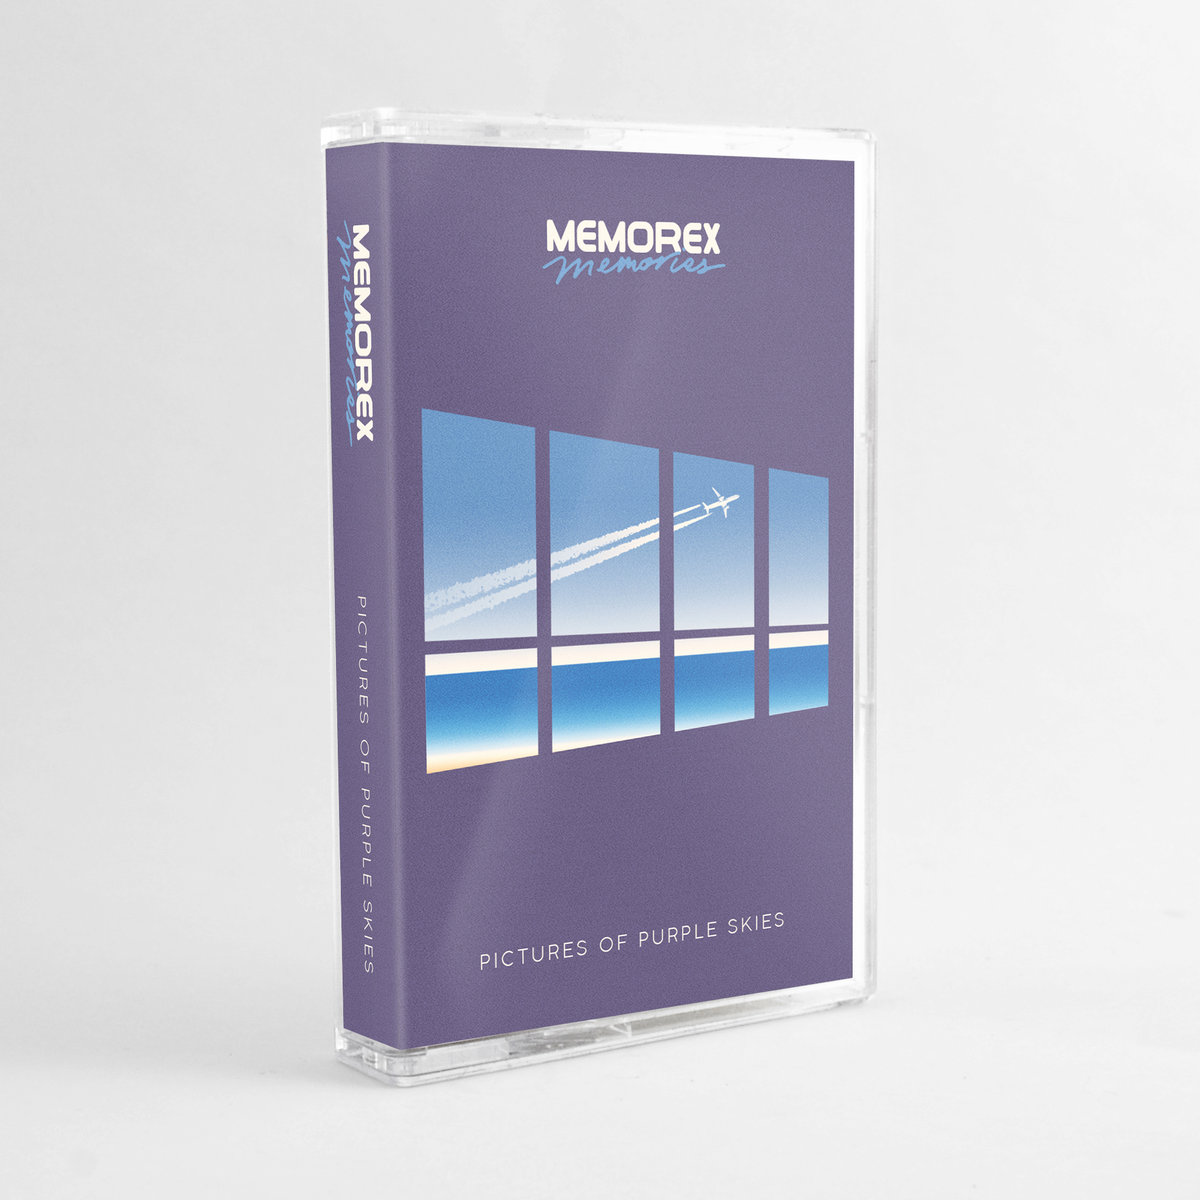 Pictures of Purple Skies by Memorex Memories (Limited Edition Cassette) 1